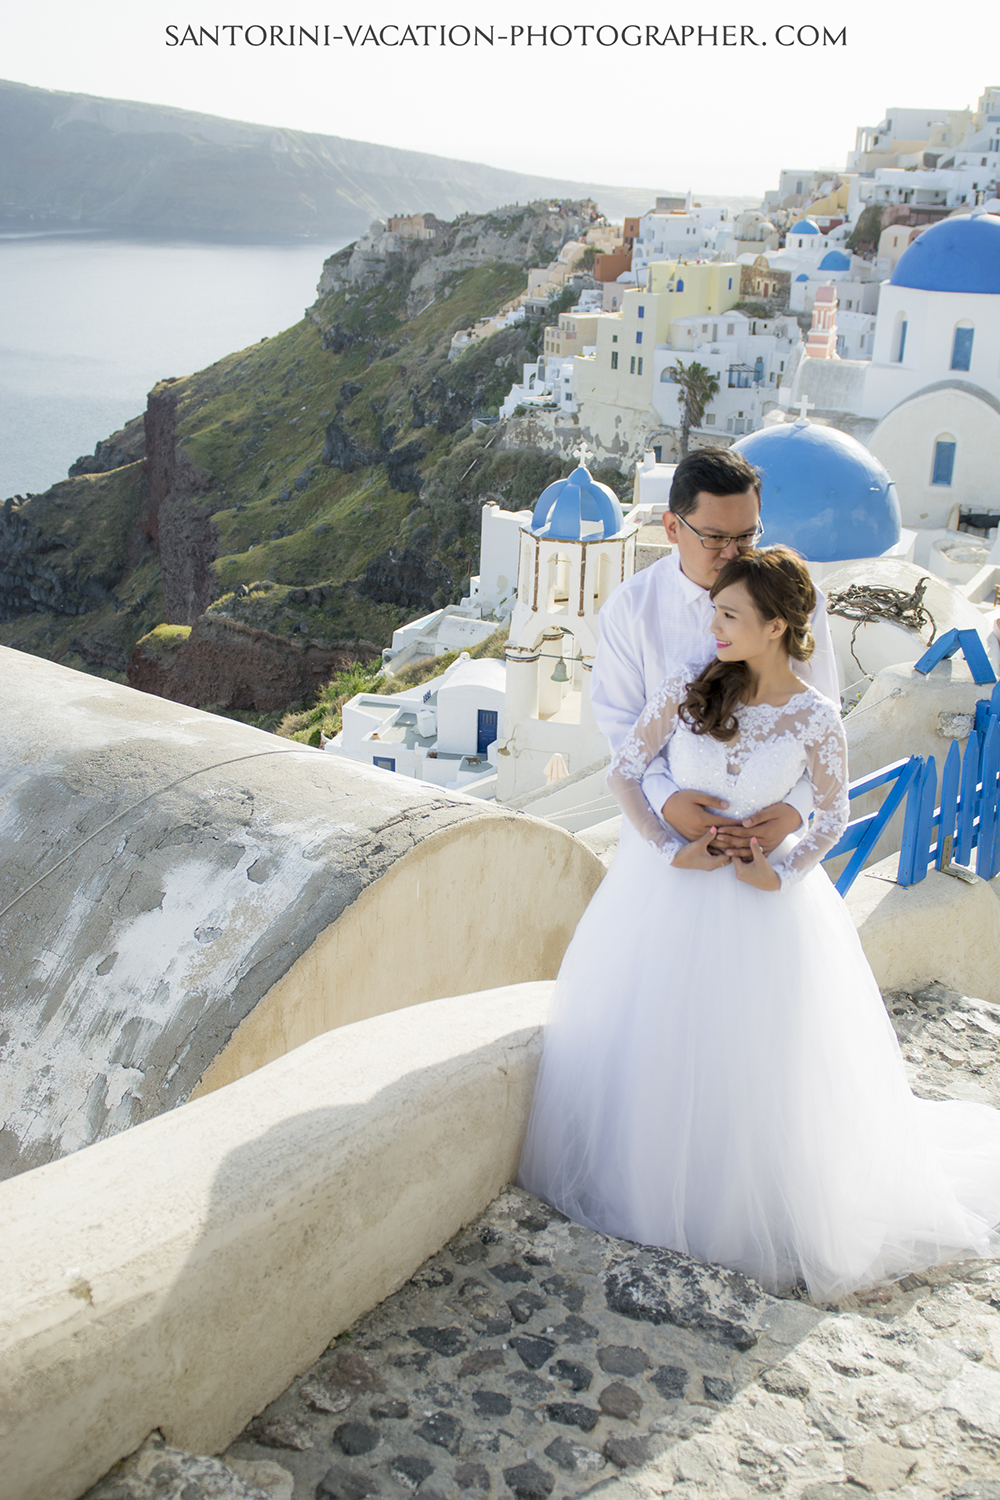 Santorini oia blue church photo shoot